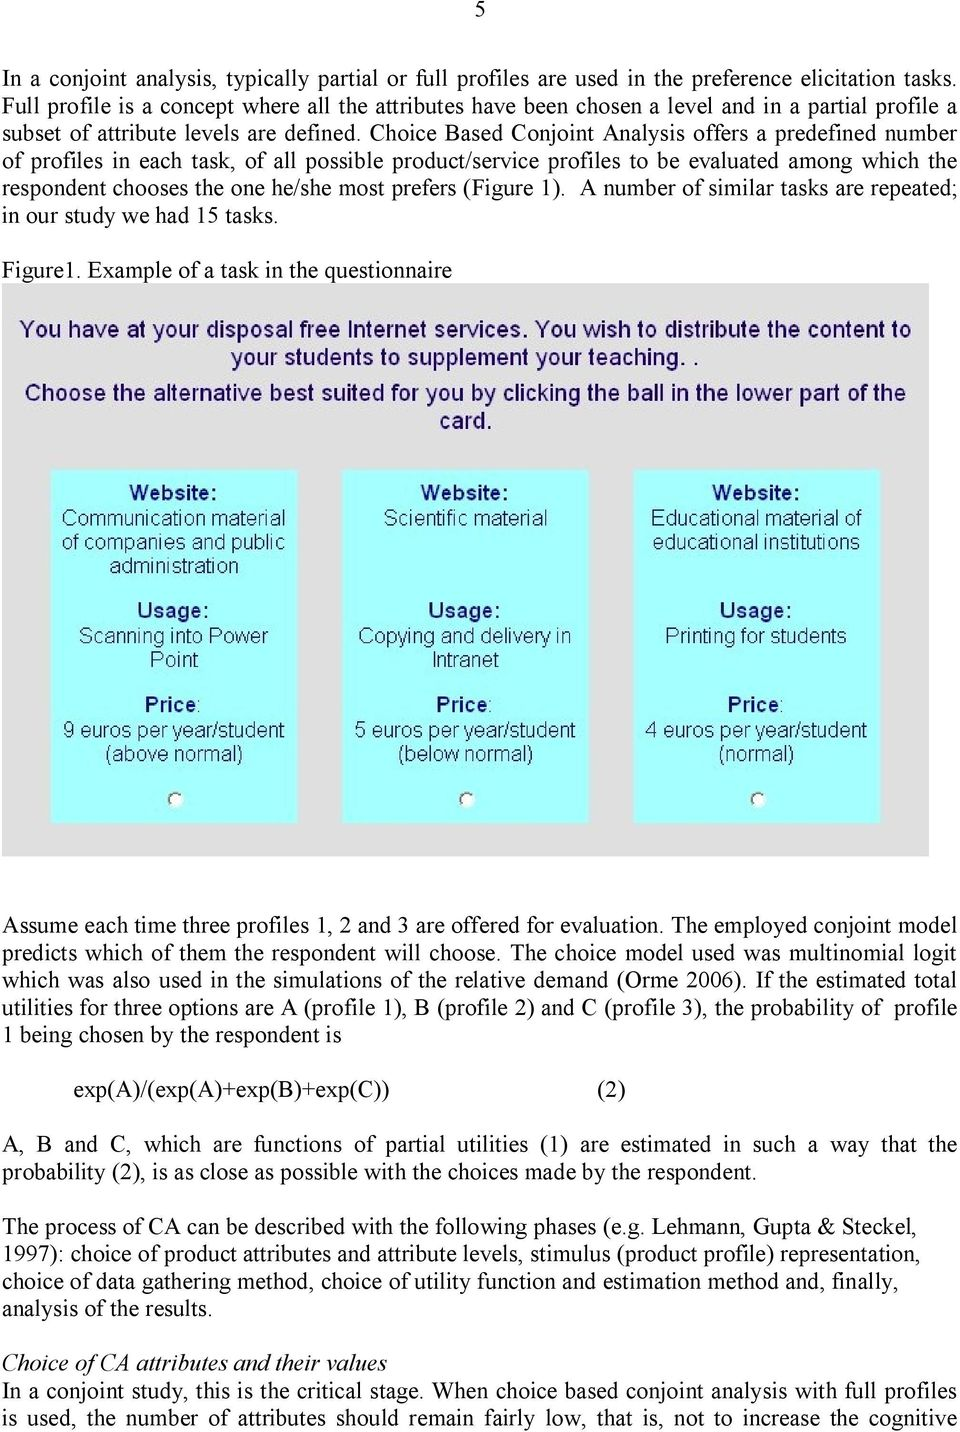 Choice Based Conjoint Analysis offers a predefined number of profiles in each task, of all possible product/service profiles to be evaluated among which the respondent chooses the one he/she most